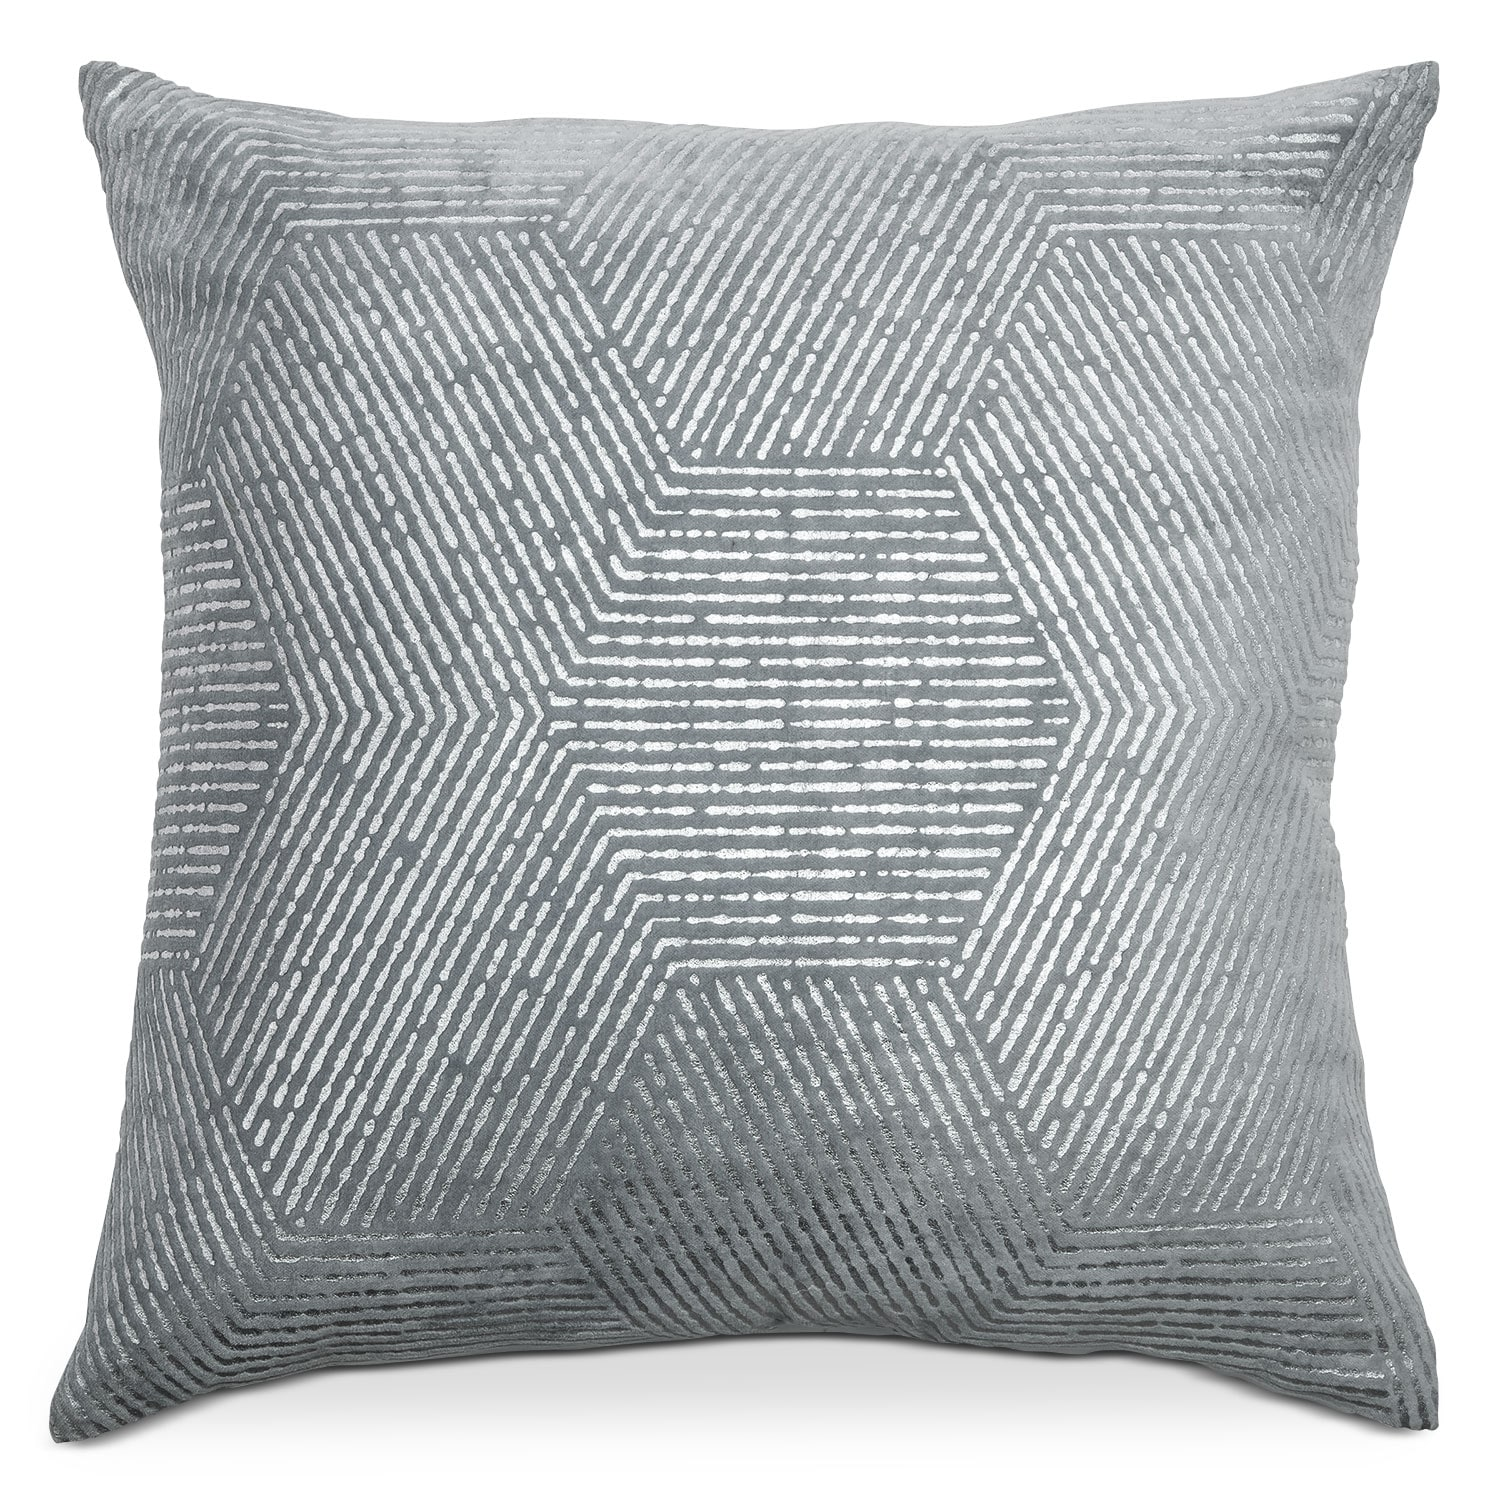 Poly Quilt Spa Gray Decorative Pillow